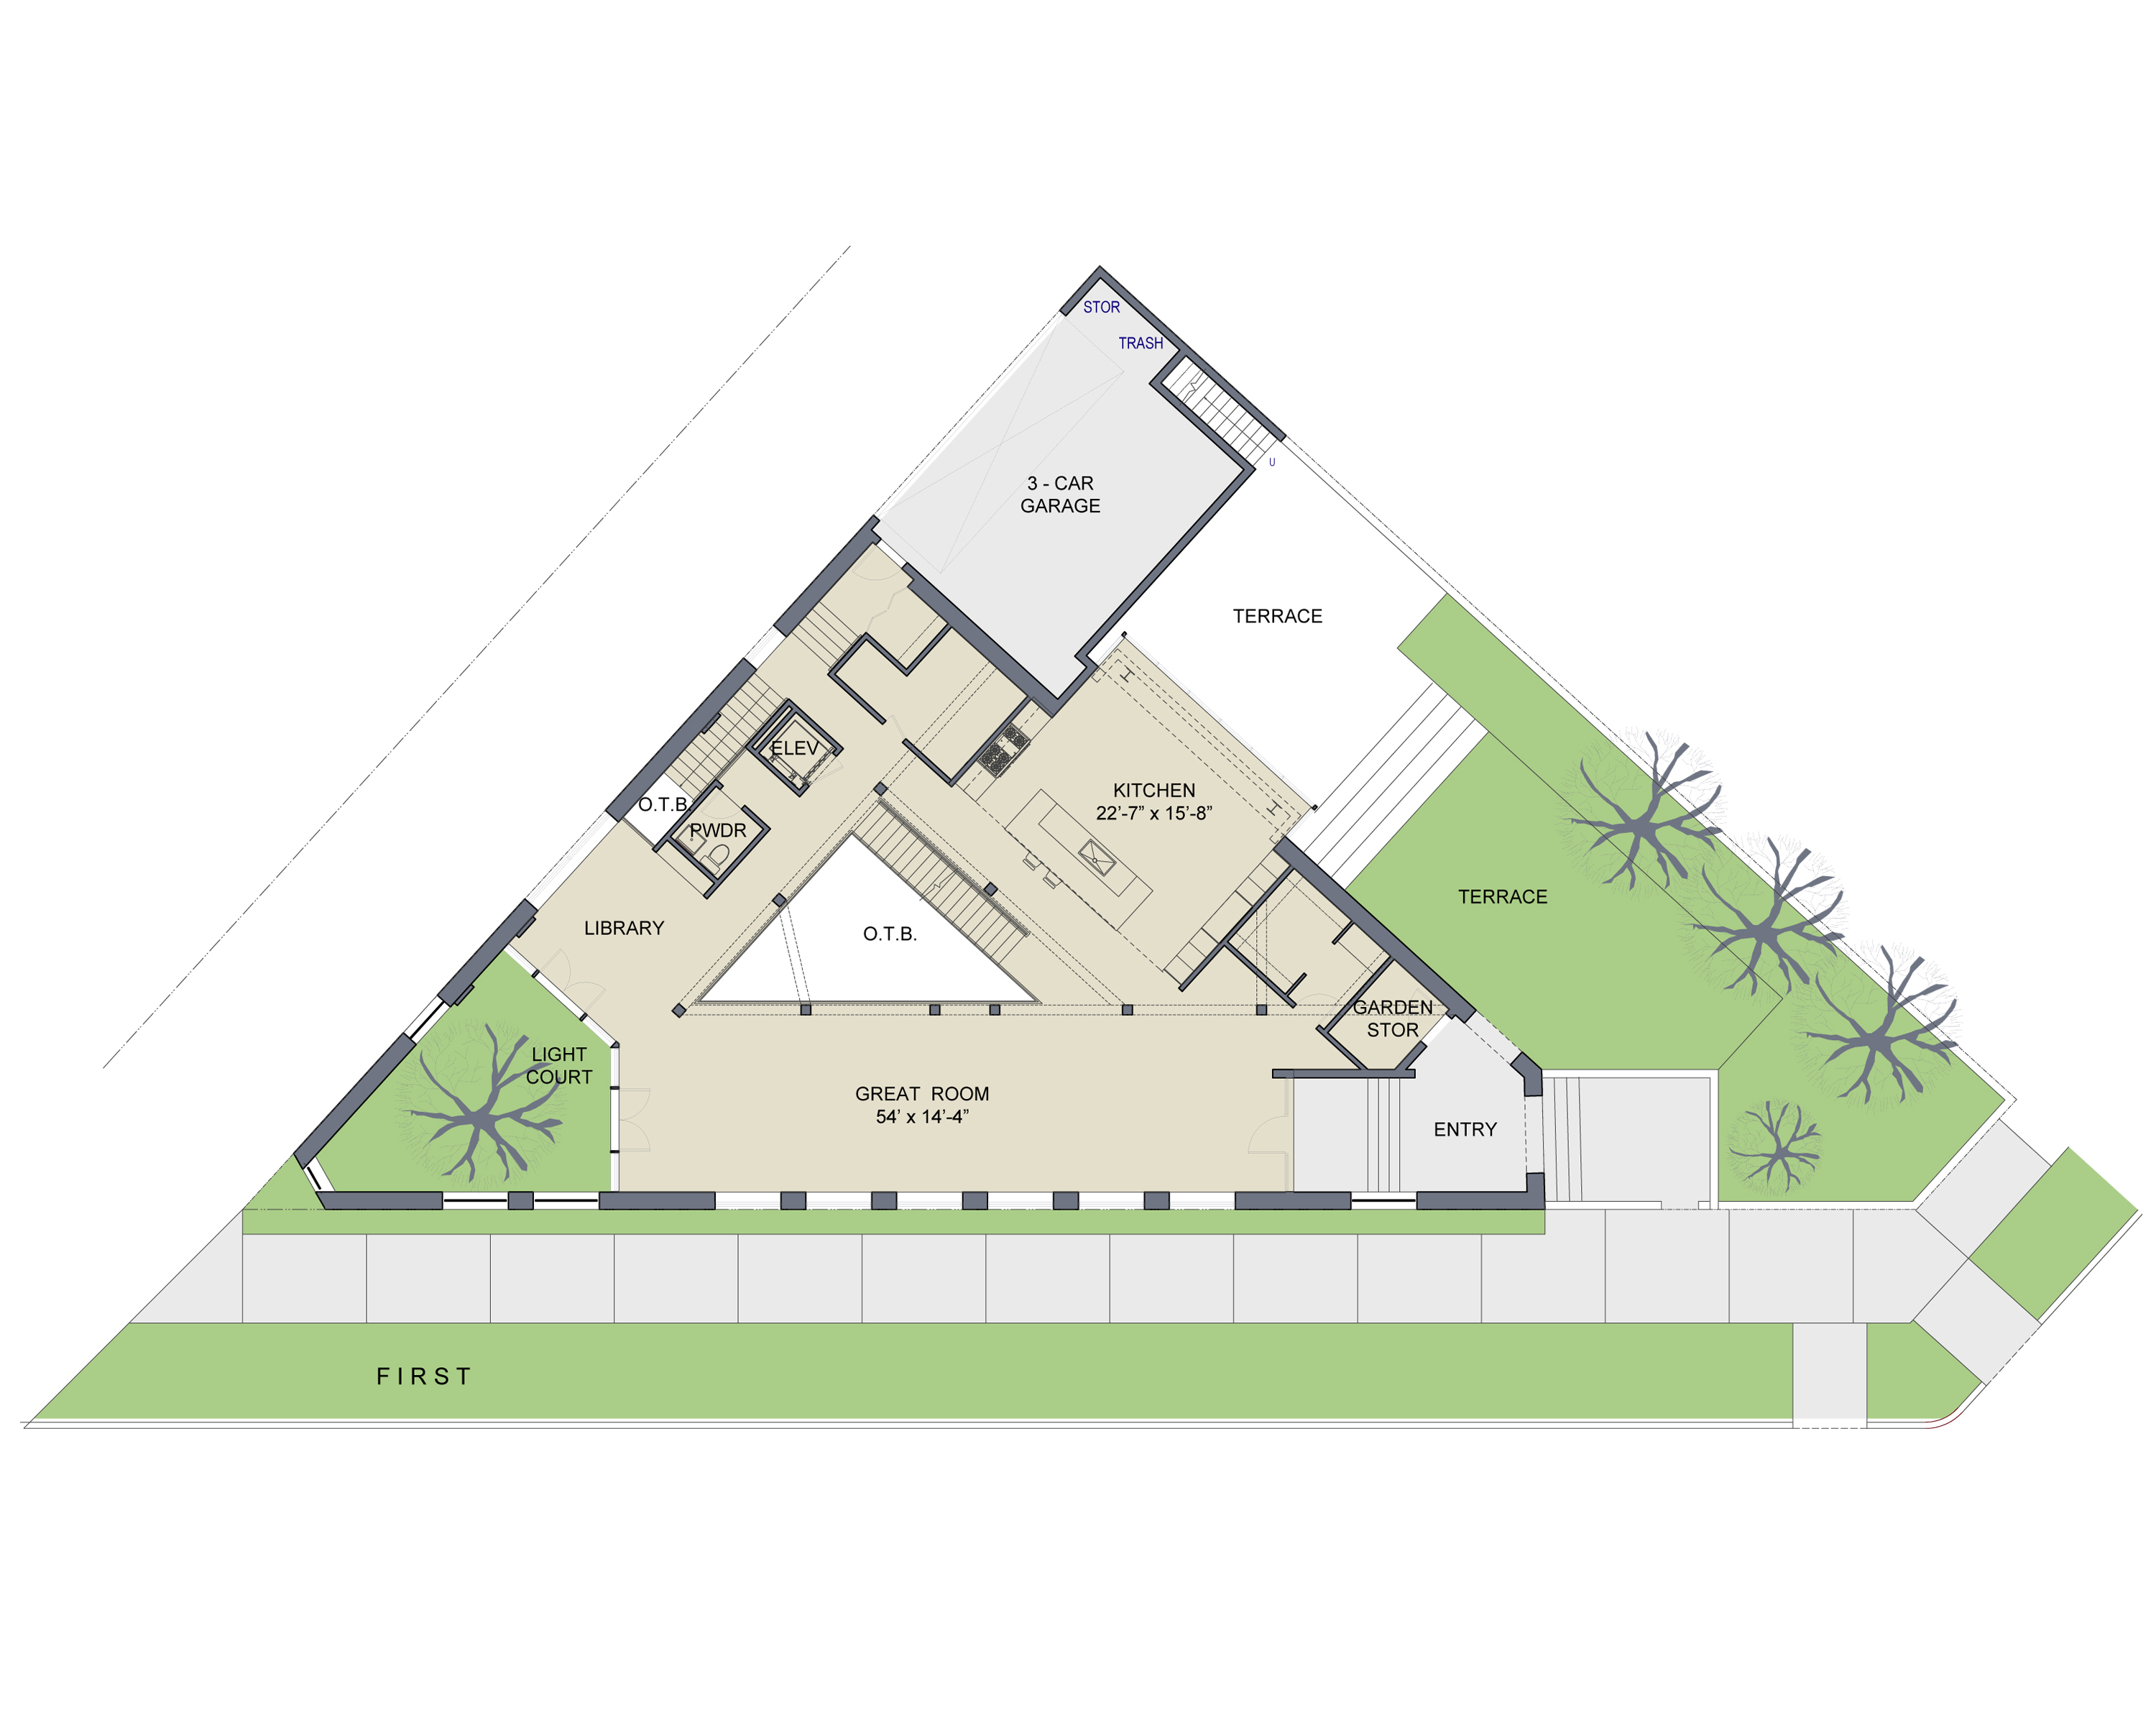 Pics For Triangle Shaped Building Plan